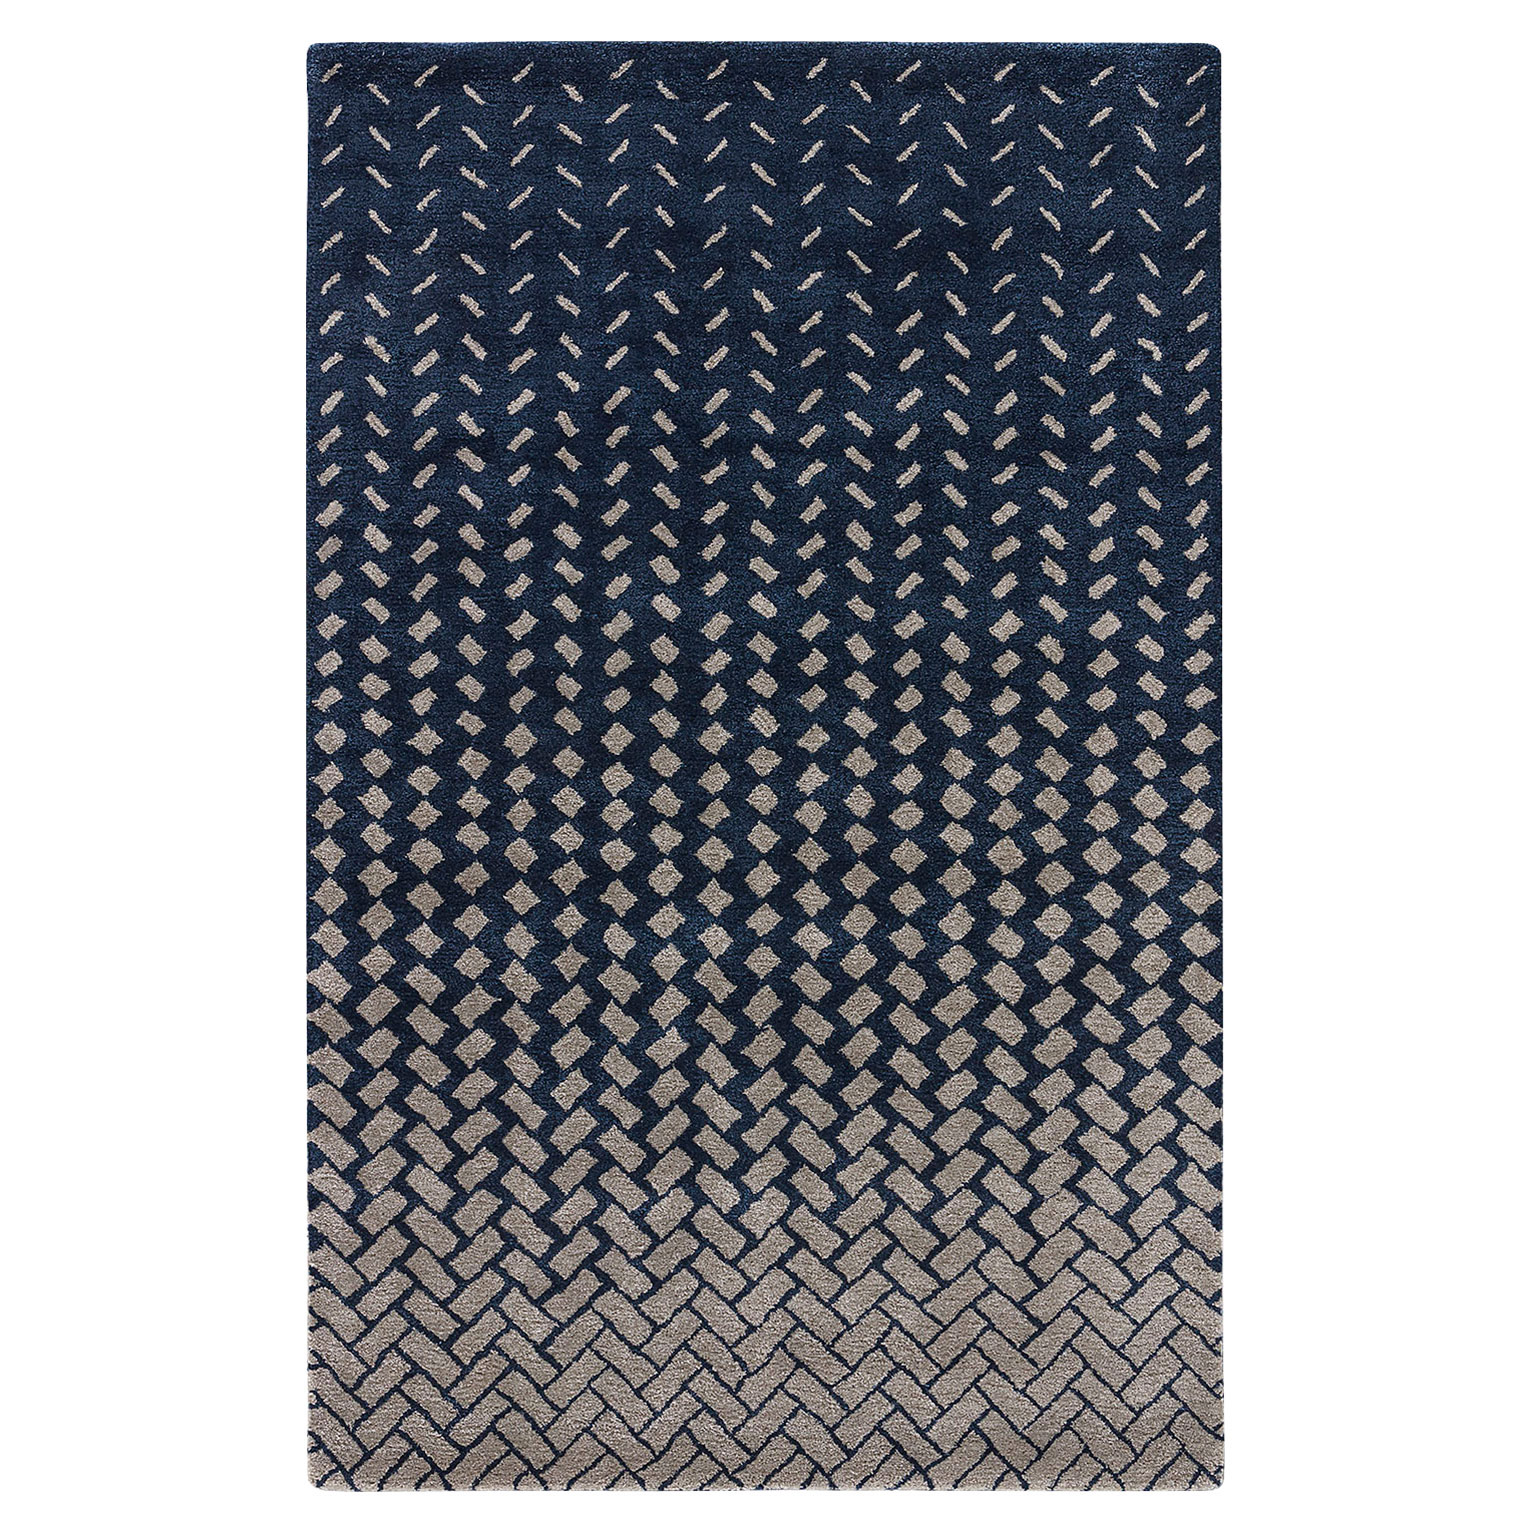 Wisco Modern Tile Wash Navy Wool Rug - 8x11